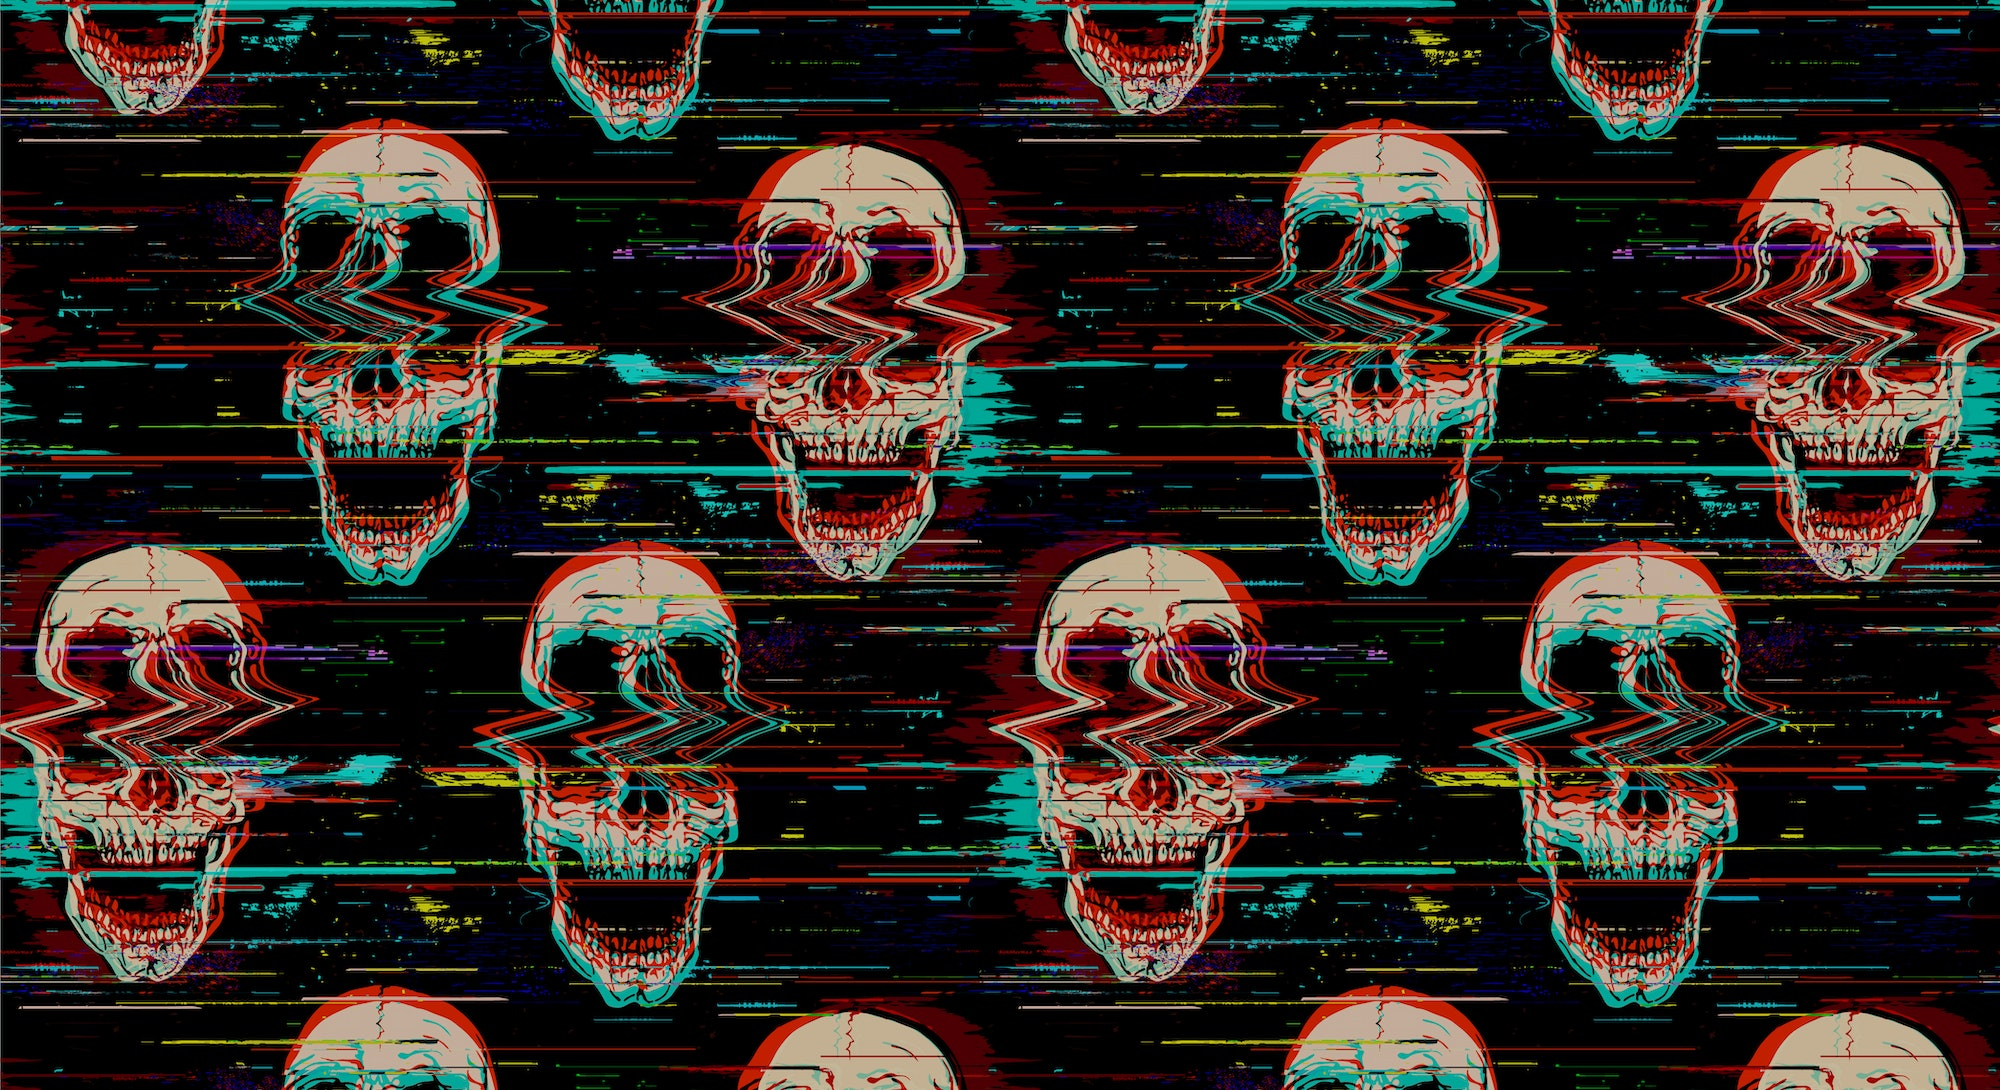 Digital seamless pattern of glitch screaming skull illustration with noise interference from hand drawn illustration.